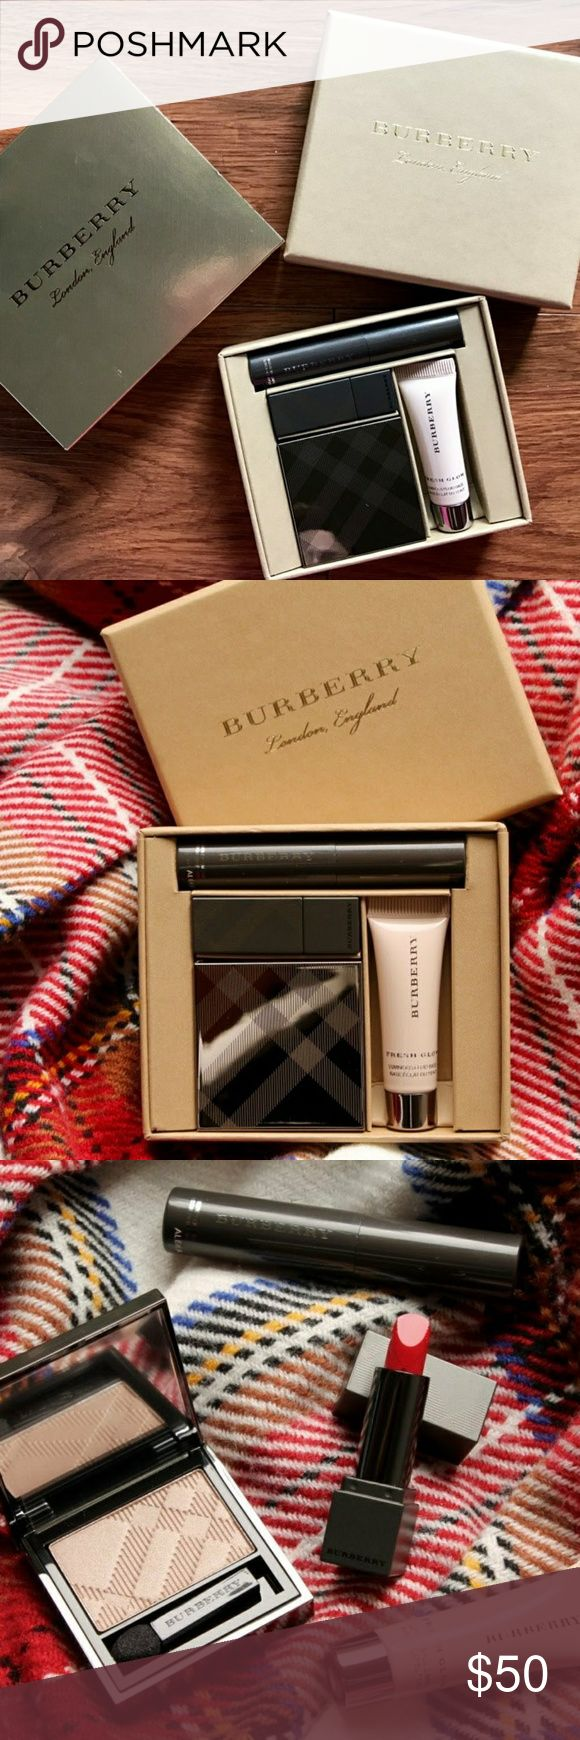 Burberry mini beauty box festive collection Sold out online and in stores Brand new and unused. Only opened the box to take pictures Perfect for a woman who loves makeup  What it is: A collection of Burberry beauty products presented in a signature, giftable box. Box includes: Mini fresh glow luminous fluid base in Nude radiance no. 1 (0.17 oz) Full-size eye color in Pale barley no. 102 (0.02 oz) Mini lip velvet in Military red no. 429 (0.02 oz) Mini Burberry cat lashes in Jet black no. 1…